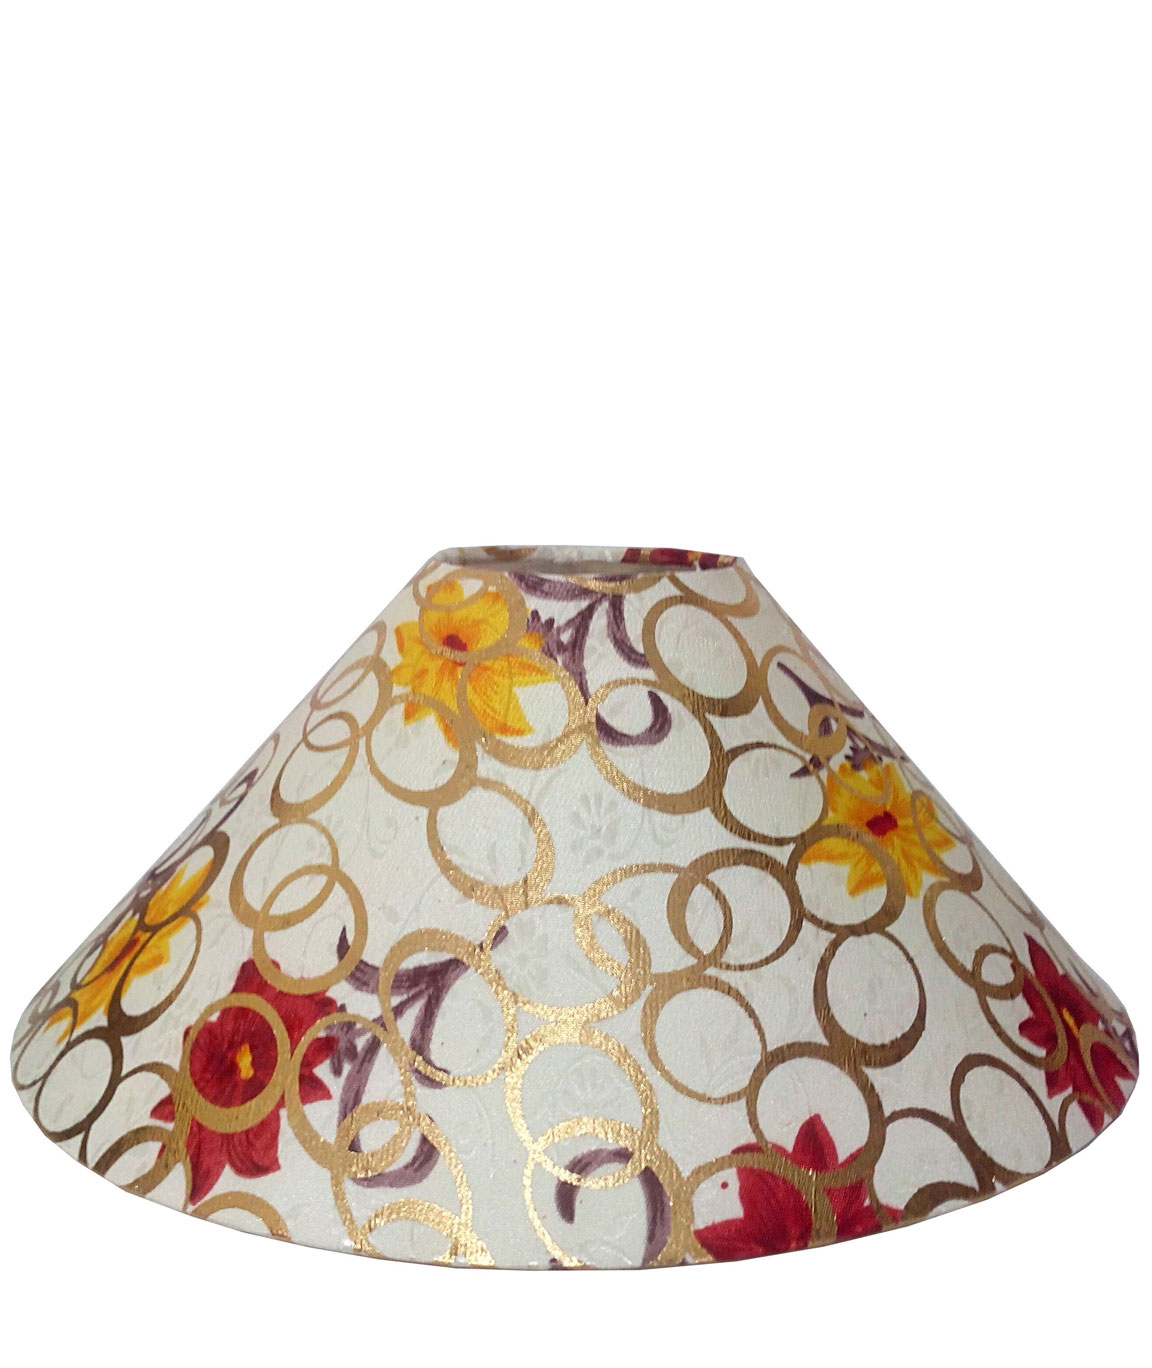 RDC 13 Inches Round Cream with Golden Polka Dots Flower Design Lamp Shade for Table Lamp